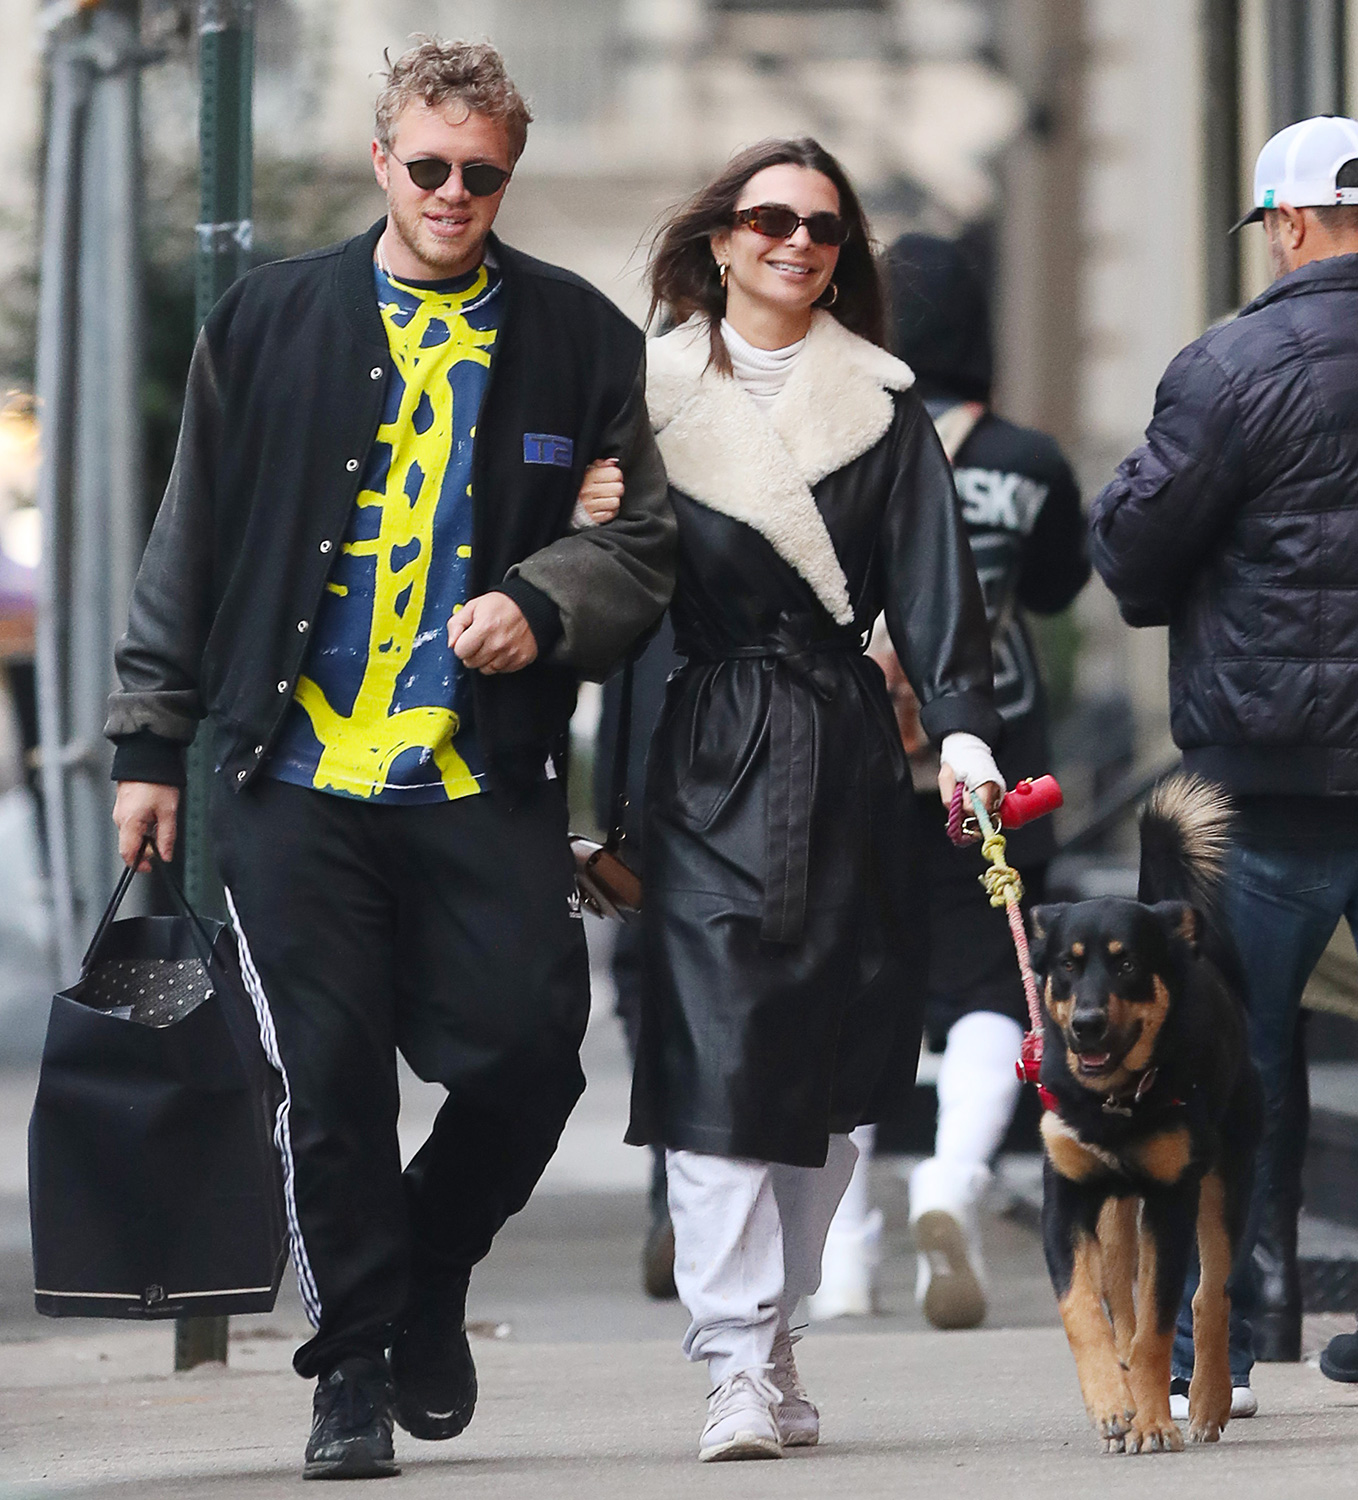 Emily Ratajkowski and Sebastian Bear-McClard are spotted out walking their dog in downtown Manhattan